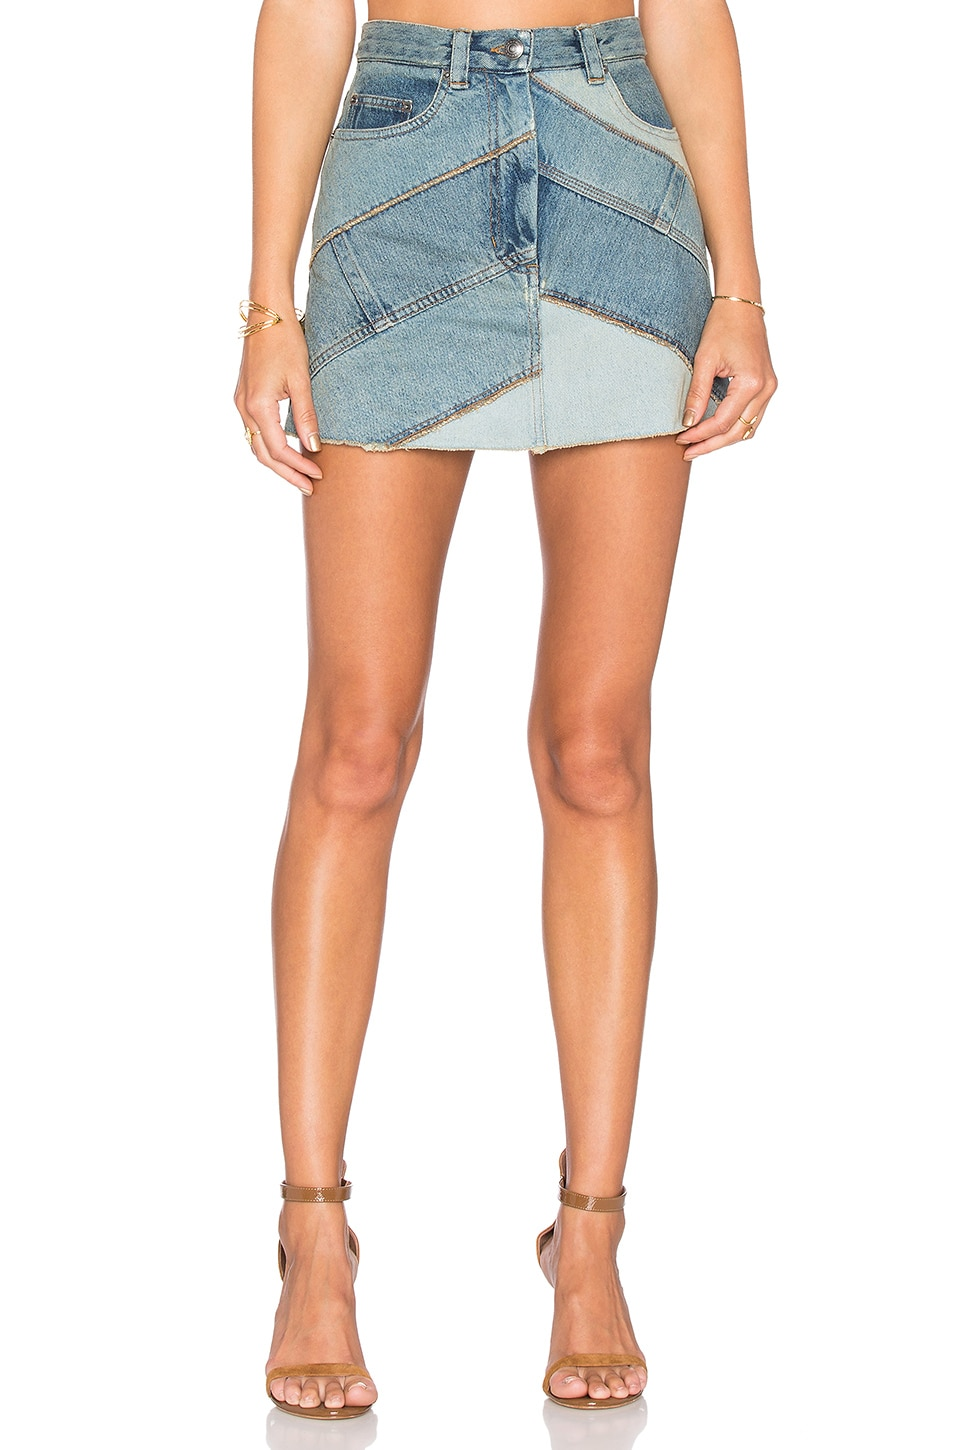 Marc by Marc Jacobs Chevron Mini Skirt in Patched Blue